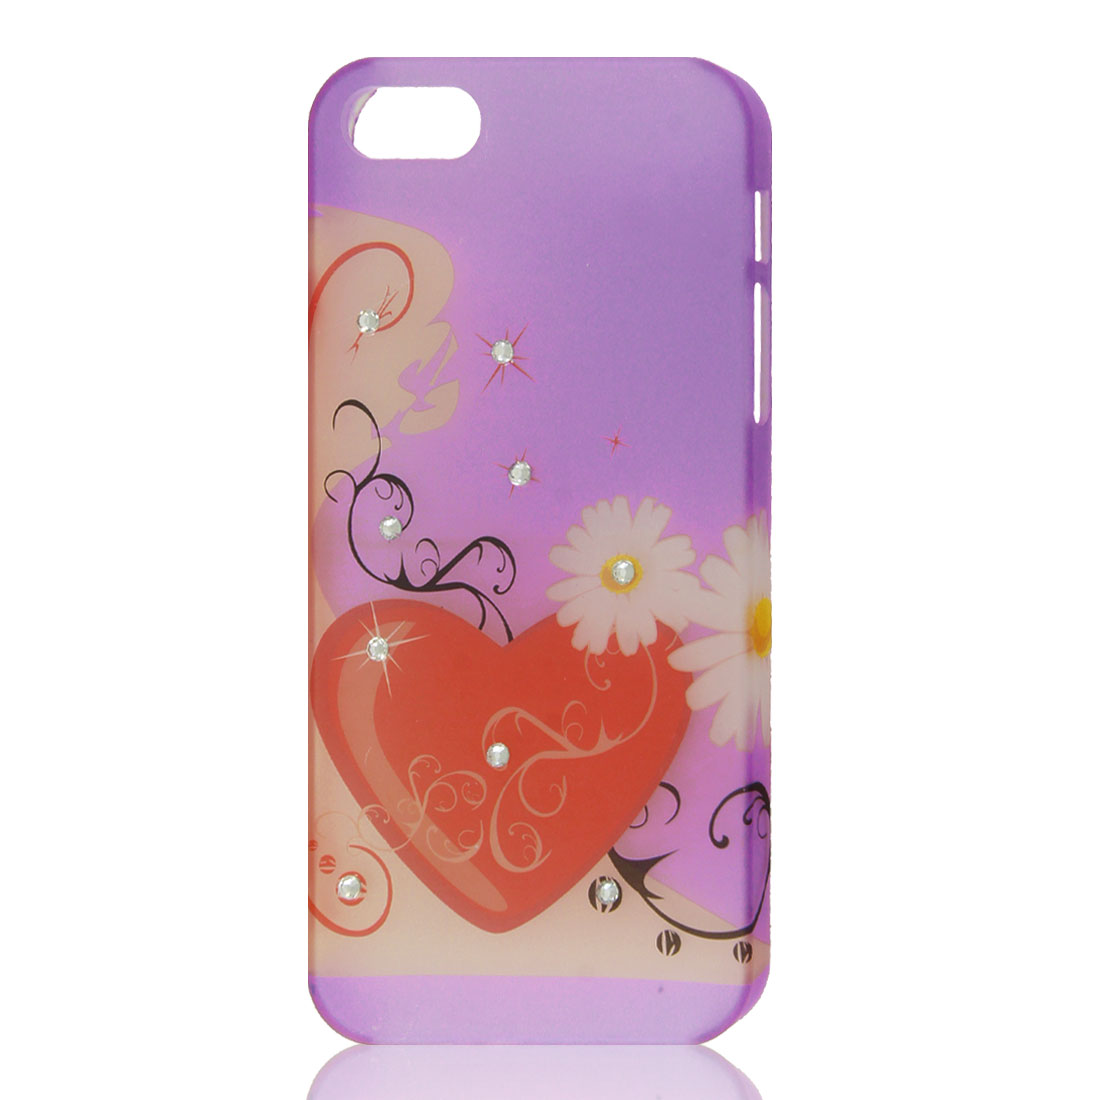 Floral Heart Love Bling Glitter Rhinestone Hard Back Case Cover for iPhone 5 5G